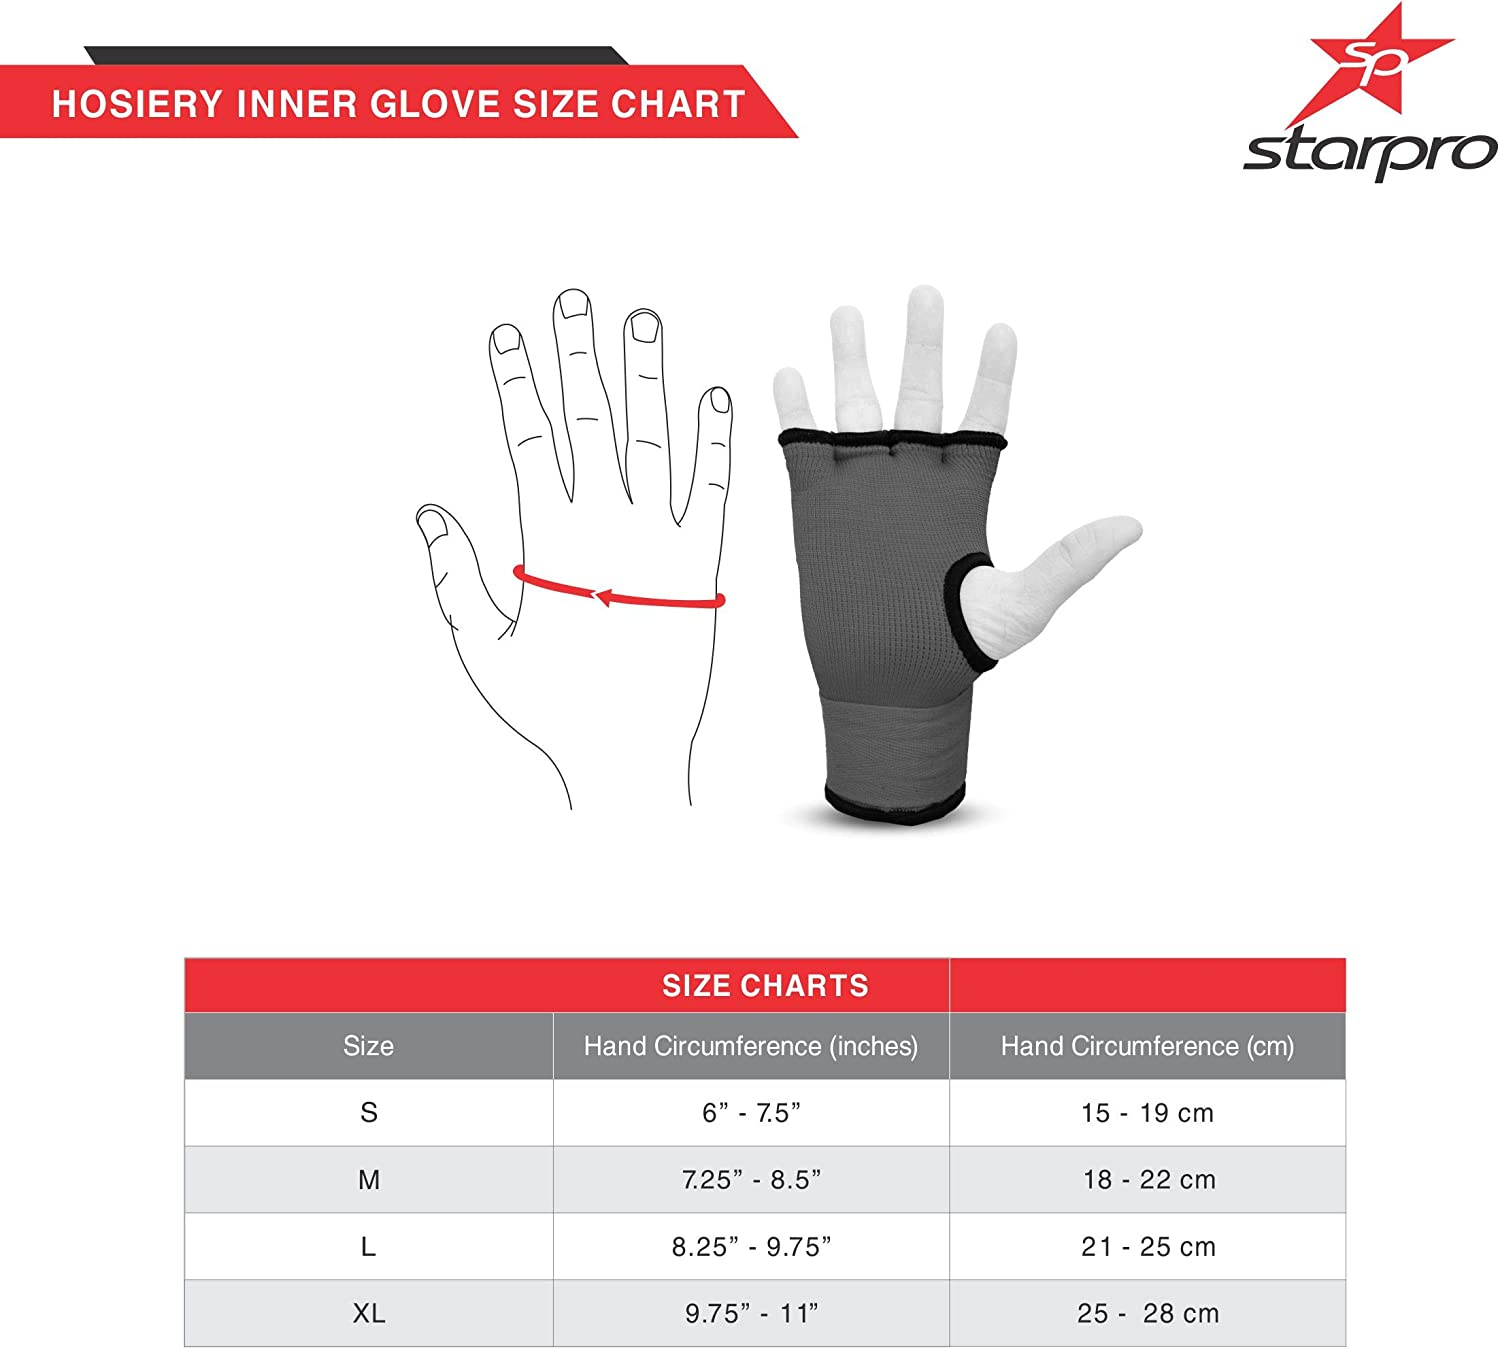 Multi Colours Cotton Glove /& Semi bandage Starpro Hook n/' Loop Inner Gloves Fist /& Thumb Protector for Boxing Sparring Muay Thai Kickboxing MMA Martial Arts and Fight Training